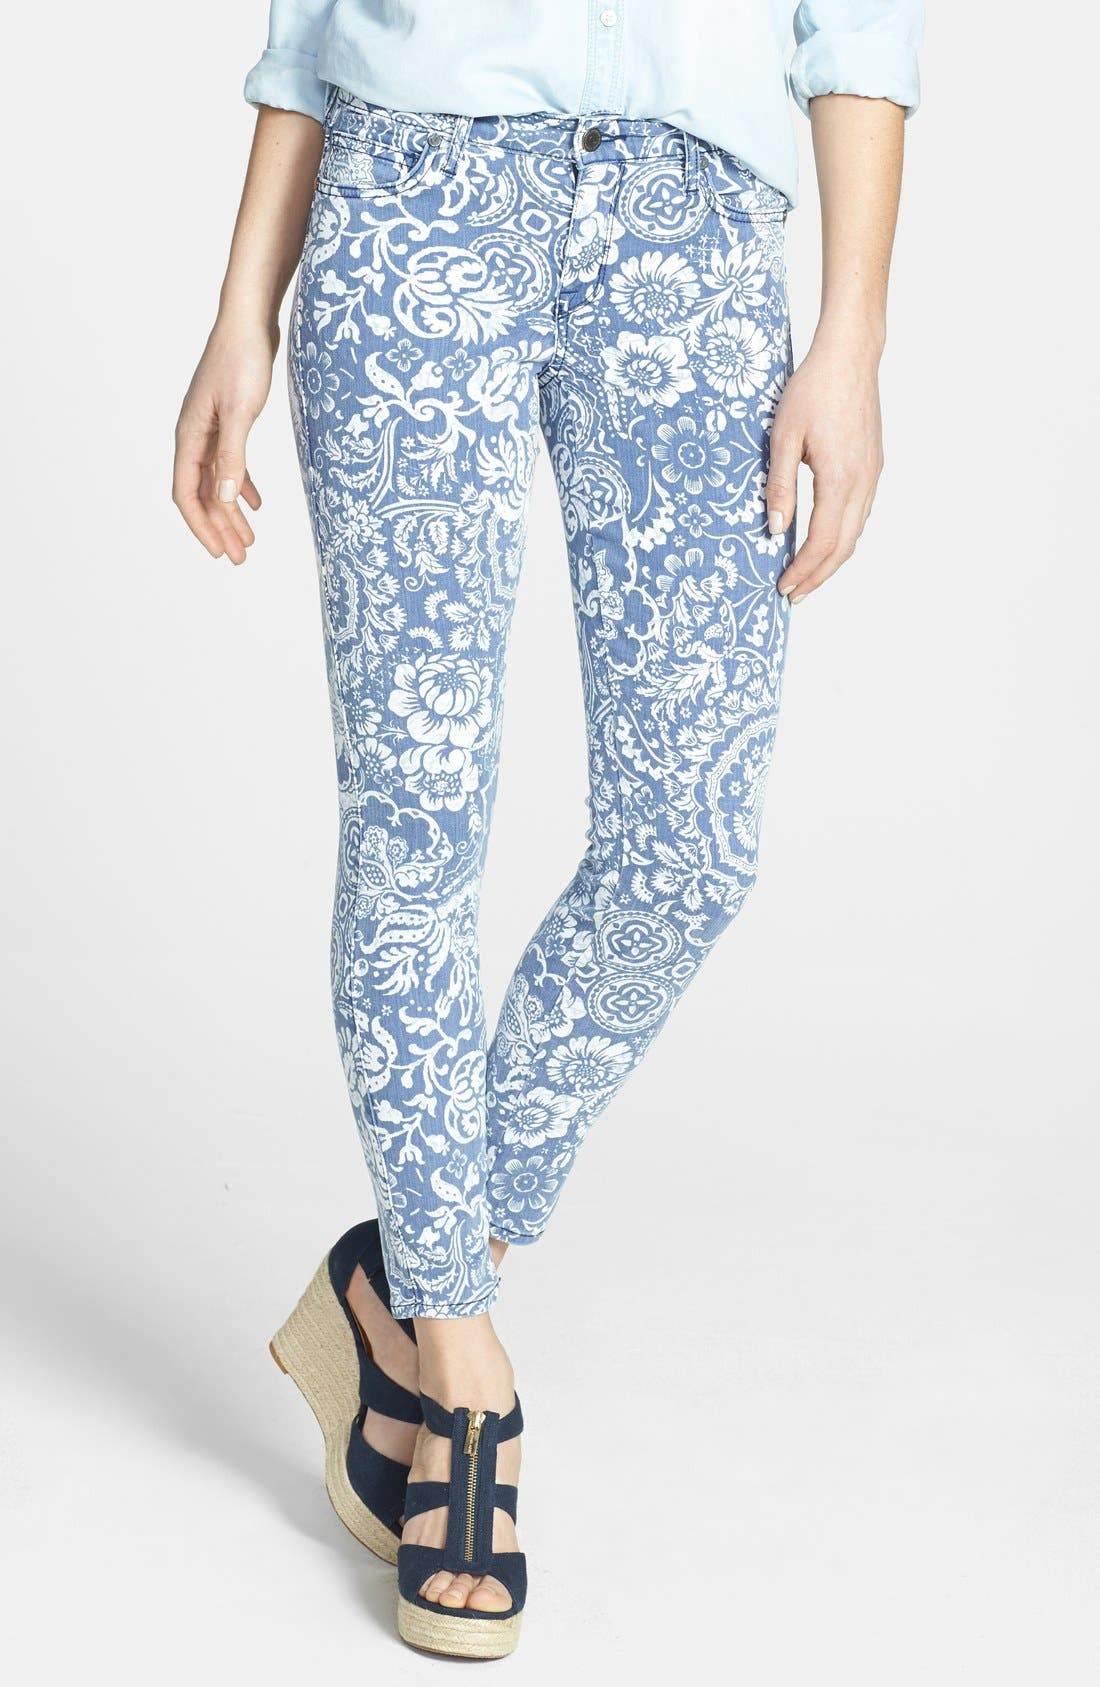 Alternate Image 1 Selected - CJ by Cookie Johnson 'Wisdom' Print Skinny Ankle Jeans (Slate)